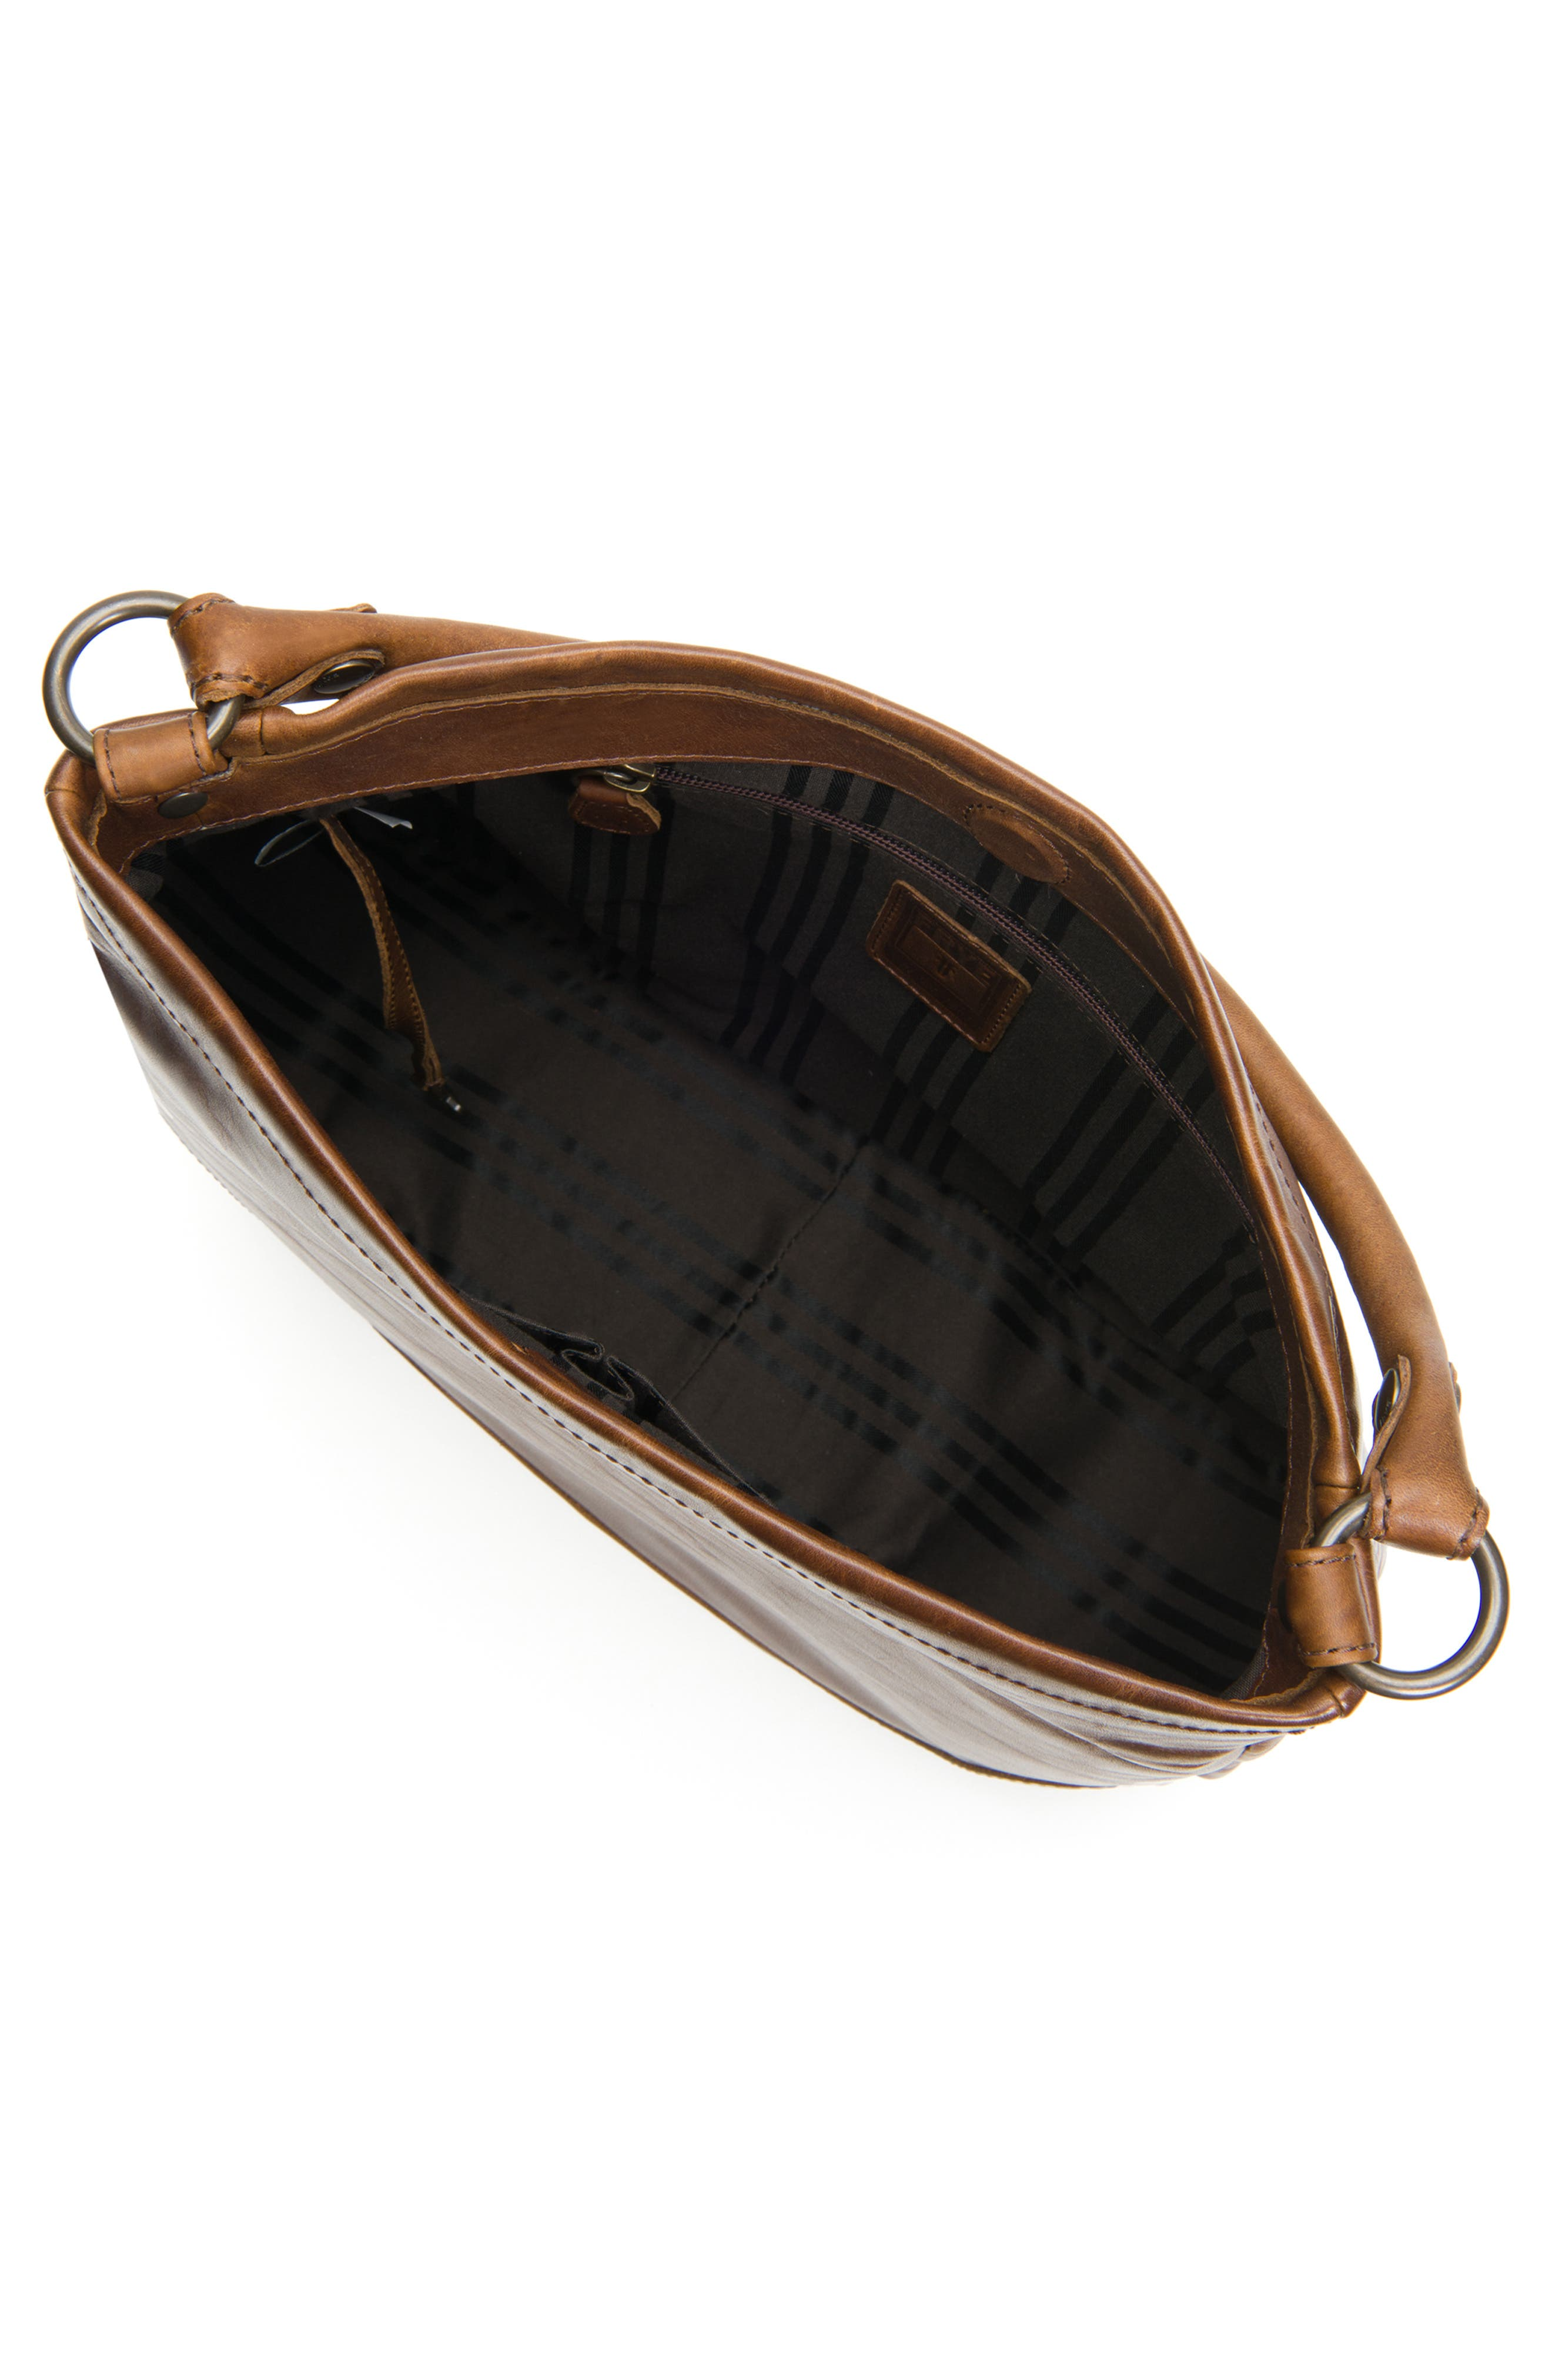 FRYE, Melissa Leather Hobo, Alternate thumbnail 5, color, DARK BROWN